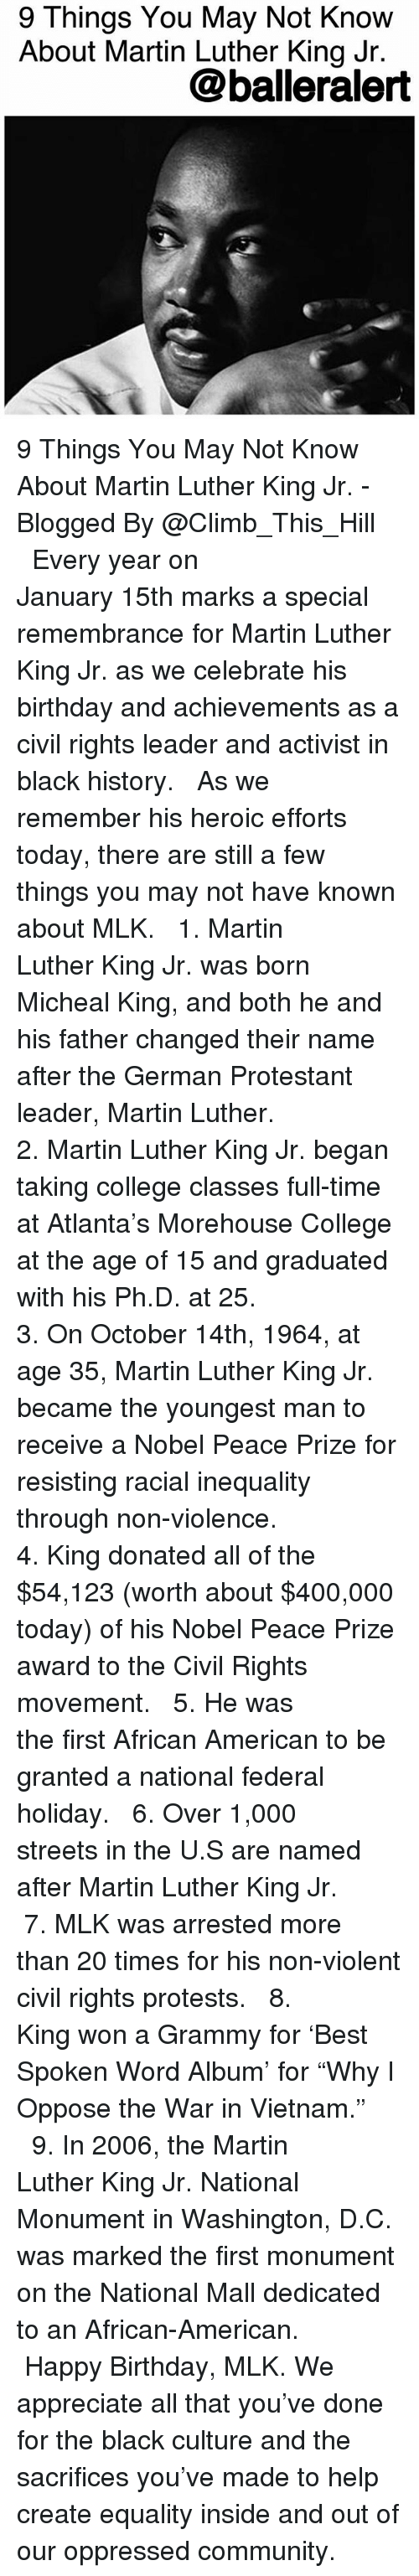 """protestant: 9 Things You May Not Know  About Martin Luther King Jr.  @balleralert 9 Things You May Not Know About Martin Luther King Jr. - Blogged By @Climb_This_Hill ⠀⠀⠀⠀⠀⠀⠀ ⠀⠀⠀⠀⠀⠀⠀ Every year on January 15th marks a special remembrance for Martin Luther King Jr. as we celebrate his birthday and achievements as a civil rights leader and activist in black history. ⠀⠀⠀⠀⠀⠀⠀ ⠀⠀⠀⠀⠀⠀⠀ As we remember his heroic efforts today, there are still a few things you may not have known about MLK. ⠀⠀⠀⠀⠀⠀⠀ ⠀⠀⠀⠀⠀⠀⠀ 1. Martin Luther King Jr. was born Micheal King, and both he and his father changed their name after the German Protestant leader, Martin Luther. ⠀⠀⠀⠀⠀⠀⠀ ⠀⠀⠀⠀⠀⠀⠀ 2. Martin Luther King Jr. began taking college classes full-time at Atlanta's Morehouse College at the age of 15 and graduated with his Ph.D. at 25. ⠀⠀⠀⠀⠀⠀⠀ ⠀⠀⠀⠀⠀⠀⠀ 3. On October 14th, 1964, at age 35, Martin Luther King Jr. became the youngest man to receive a Nobel Peace Prize for resisting racial inequality through non-violence. ⠀⠀⠀⠀⠀⠀⠀ ⠀⠀⠀⠀⠀⠀⠀ 4. King donated all of the $54,123 (worth about $400,000 today) of his Nobel Peace Prize award to the Civil Rights movement. ⠀⠀⠀⠀⠀⠀⠀ ⠀⠀⠀⠀⠀⠀⠀ 5. He was the first African American to be granted a national federal holiday. ⠀⠀⠀⠀⠀⠀⠀ ⠀⠀⠀⠀⠀⠀⠀ 6. Over 1,000 streets in the U.S are named after Martin Luther King Jr. ⠀⠀⠀⠀⠀⠀⠀ ⠀⠀⠀⠀⠀⠀⠀ 7. MLK was arrested more than 20 times for his non-violent civil rights protests. ⠀⠀⠀⠀⠀⠀⠀ ⠀⠀⠀⠀⠀⠀⠀ 8. King won a Grammy for 'Best Spoken Word Album' for """"Why I Oppose the War in Vietnam."""" ⠀⠀⠀⠀⠀⠀⠀ ⠀⠀⠀⠀⠀⠀⠀ 9. In 2006, the Martin Luther King Jr. National Monument in Washington, D.C. was marked the first monument on the National Mall dedicated to an African-American. ⠀⠀⠀⠀⠀⠀⠀ ⠀⠀⠀⠀⠀⠀⠀ Happy Birthday, MLK. We appreciate all that you've done for the black culture and the sacrifices you've made to help create equality inside and out of our oppressed community."""